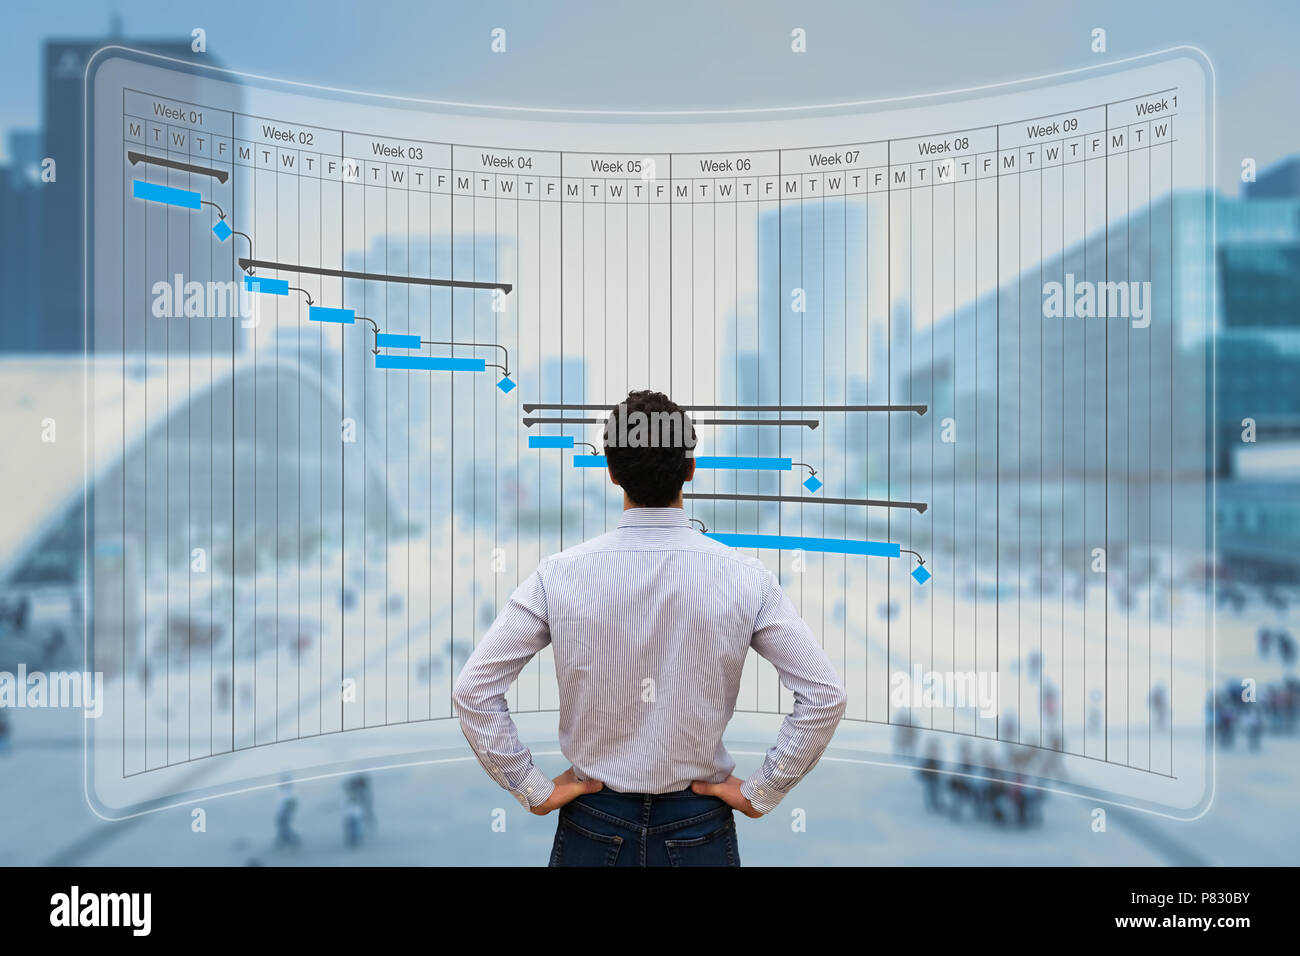 Project manager working with Gantt chart planning, tracking milestone and deliverables and updating tasks progress, scheduling skills, on virtual scre - Stock Image